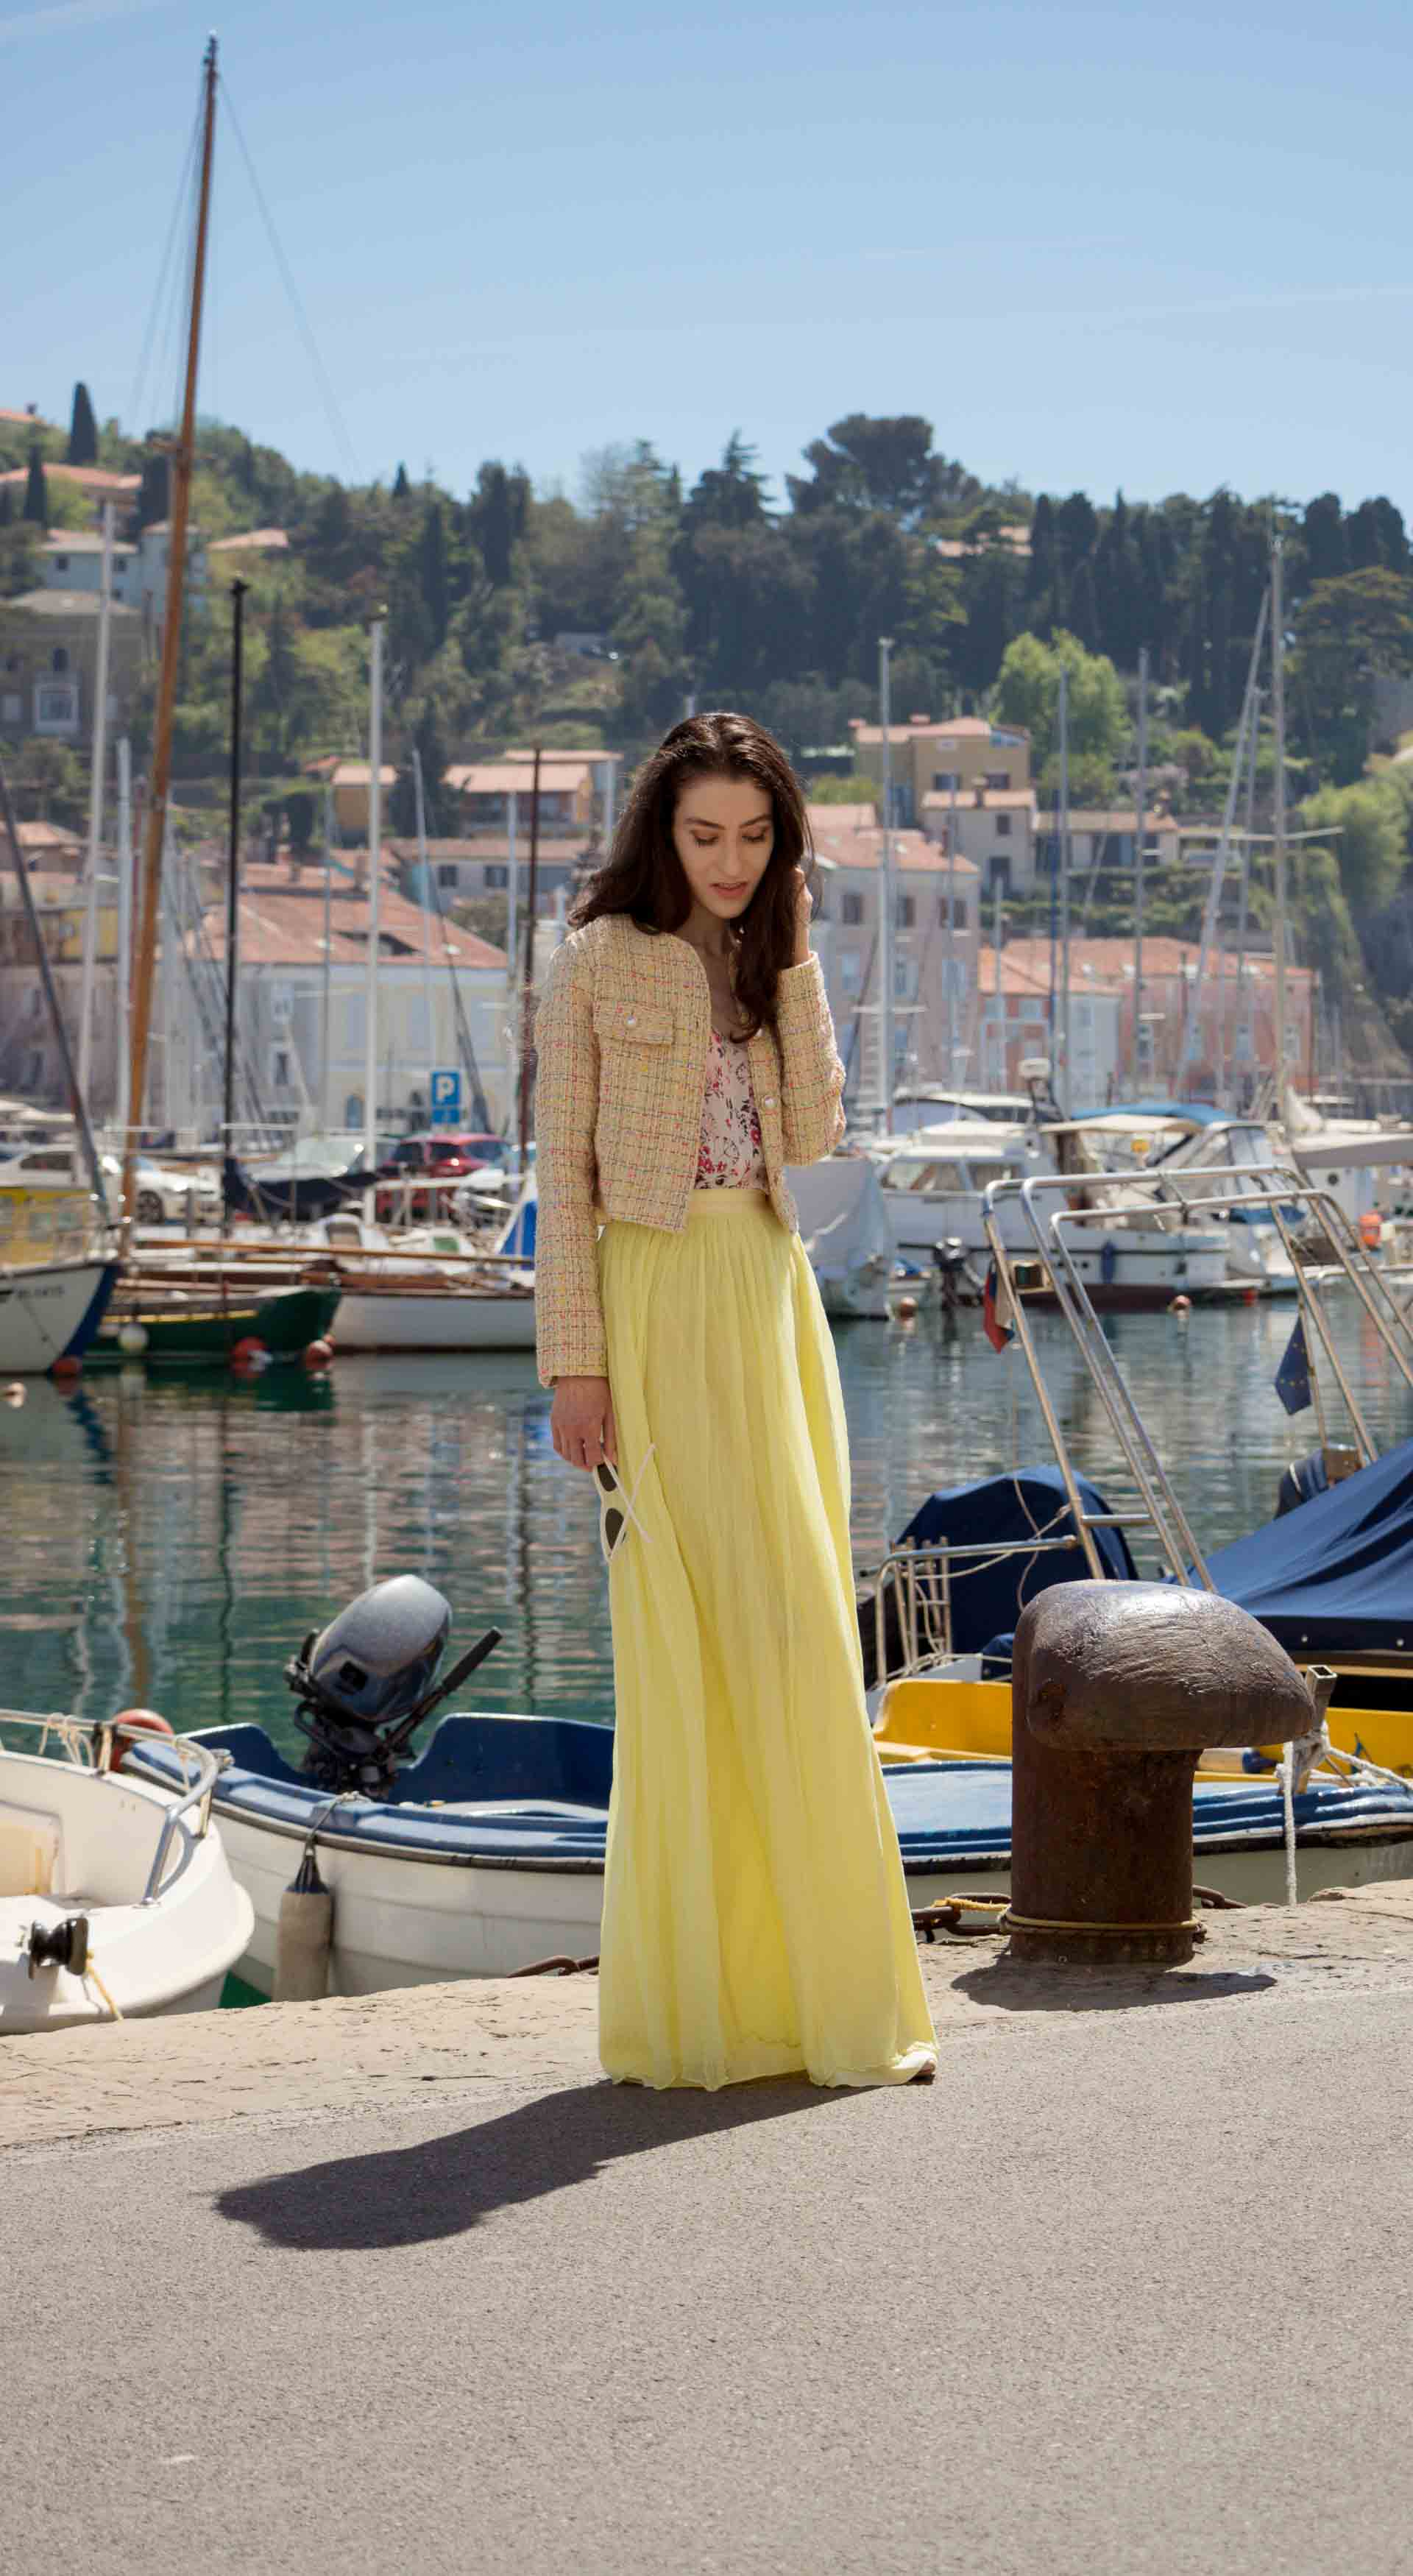 Veronika Lipar Fashion Blogger of Brunette from Wall Street wearing maxi yellow tulle skirt from Needle & Thread, short yellow tweed jacket from Storets, floral silk top, blush Gianvito Rossi plexi pumps, white shoulder bag, Lespecs white cat eye sunglasses while walking at the port in Venice